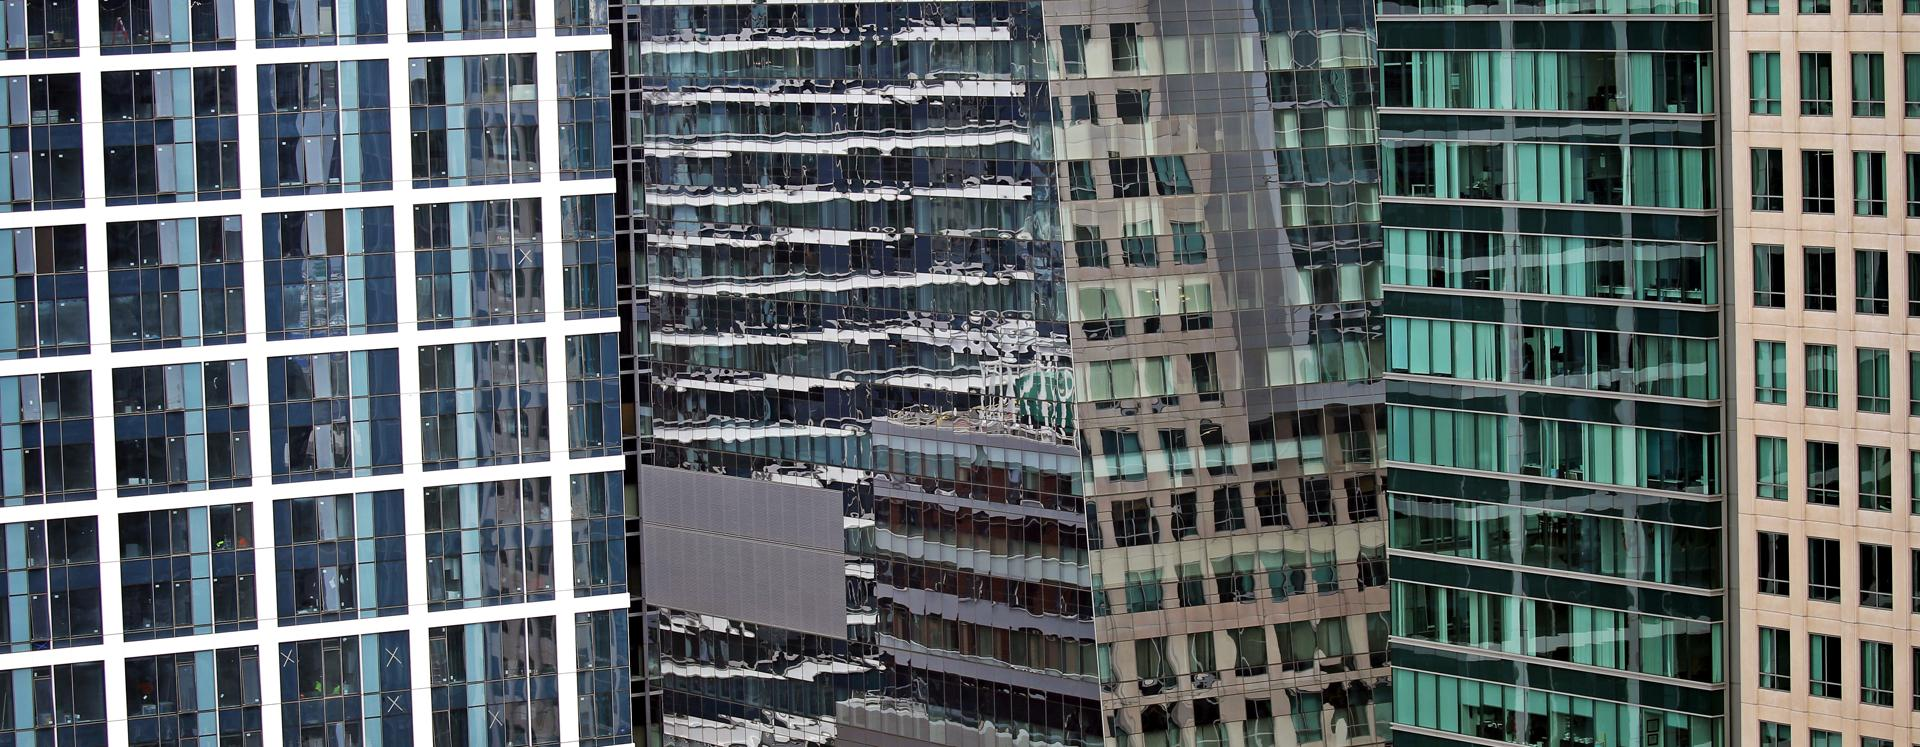 An ever-changing view of windows in the Seaport District.